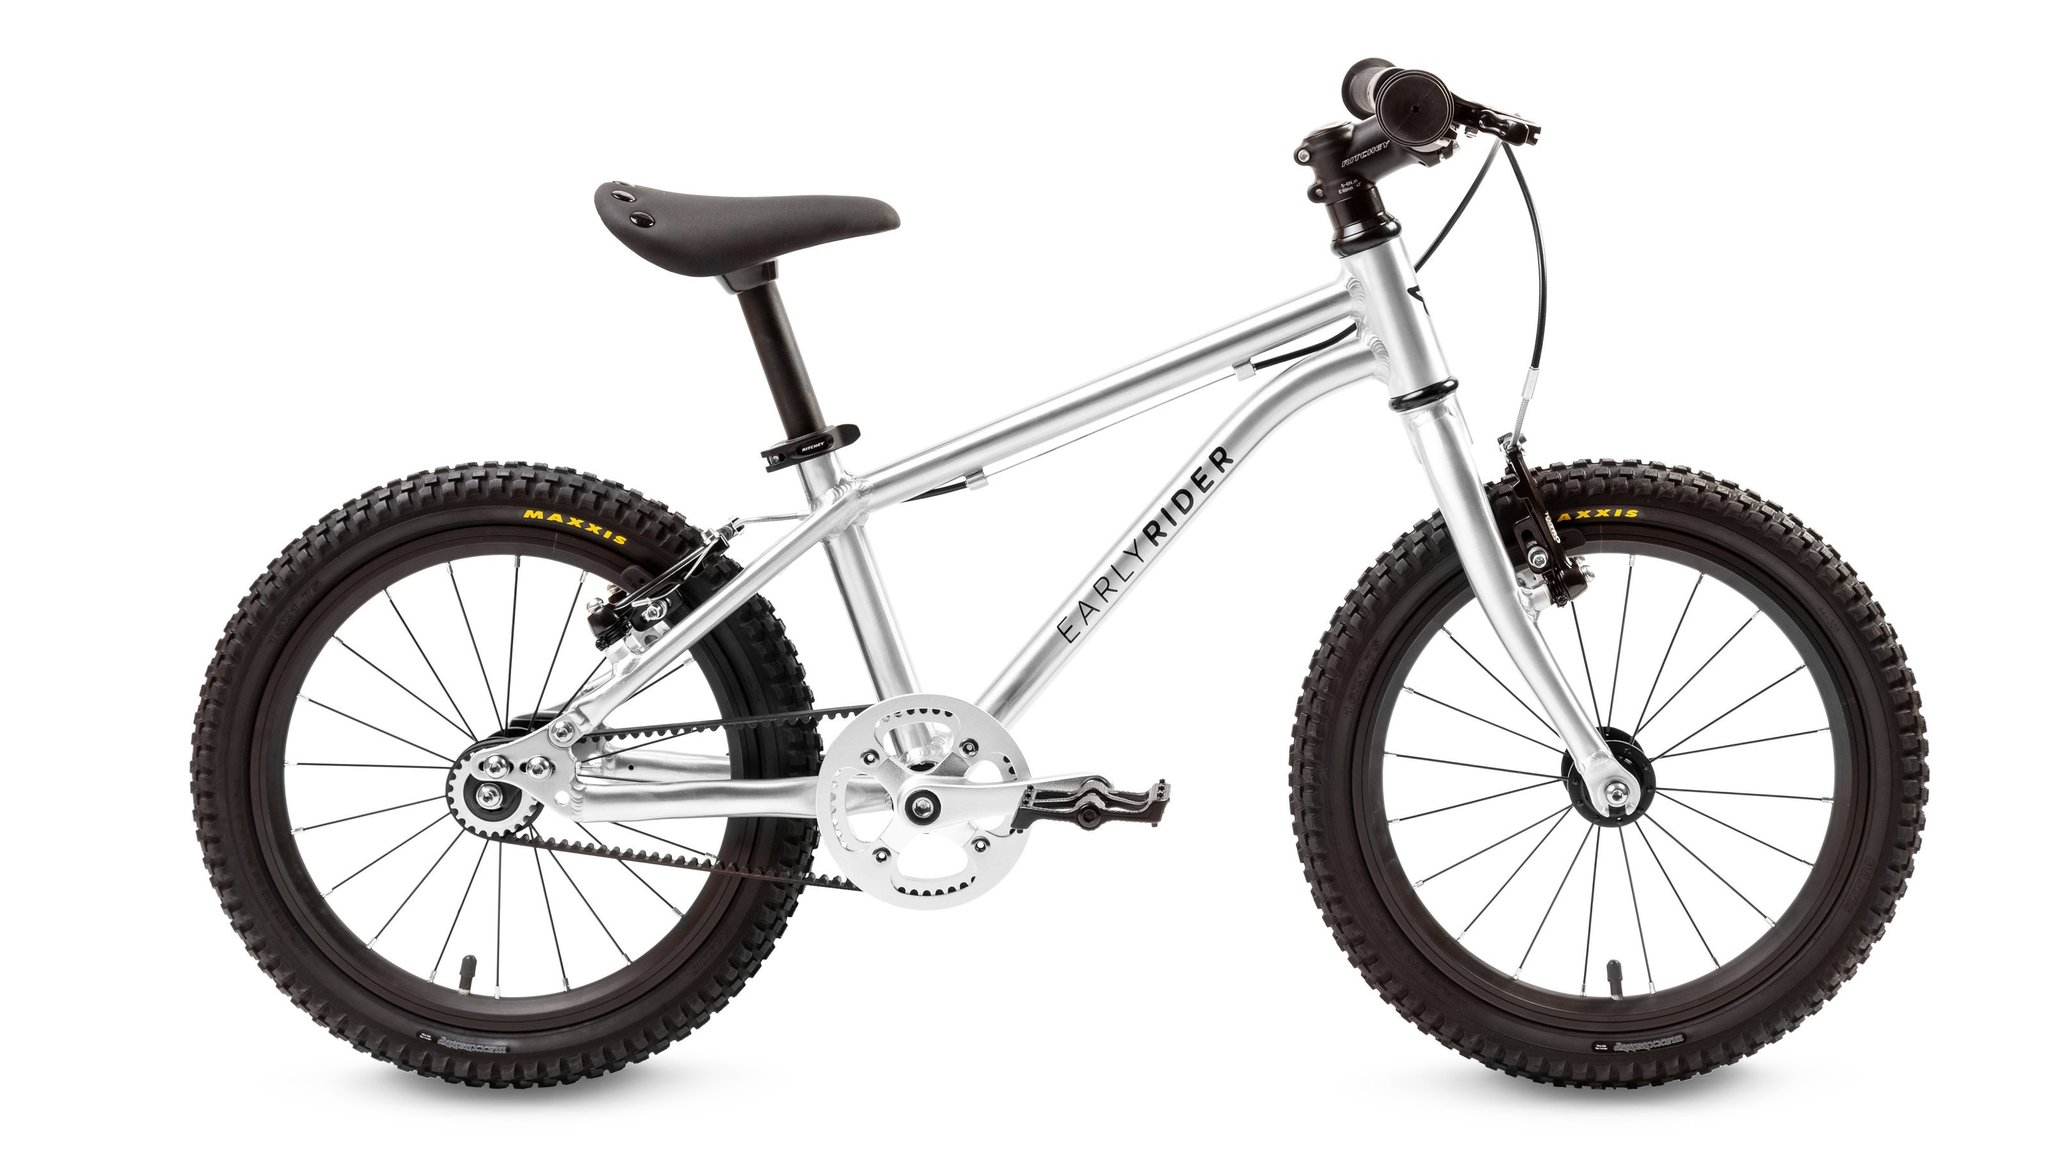 "dětské kolo Early Rider Belter Trail 16 B-T16 Kinderrad 16"" 2019 brushed aluminum"